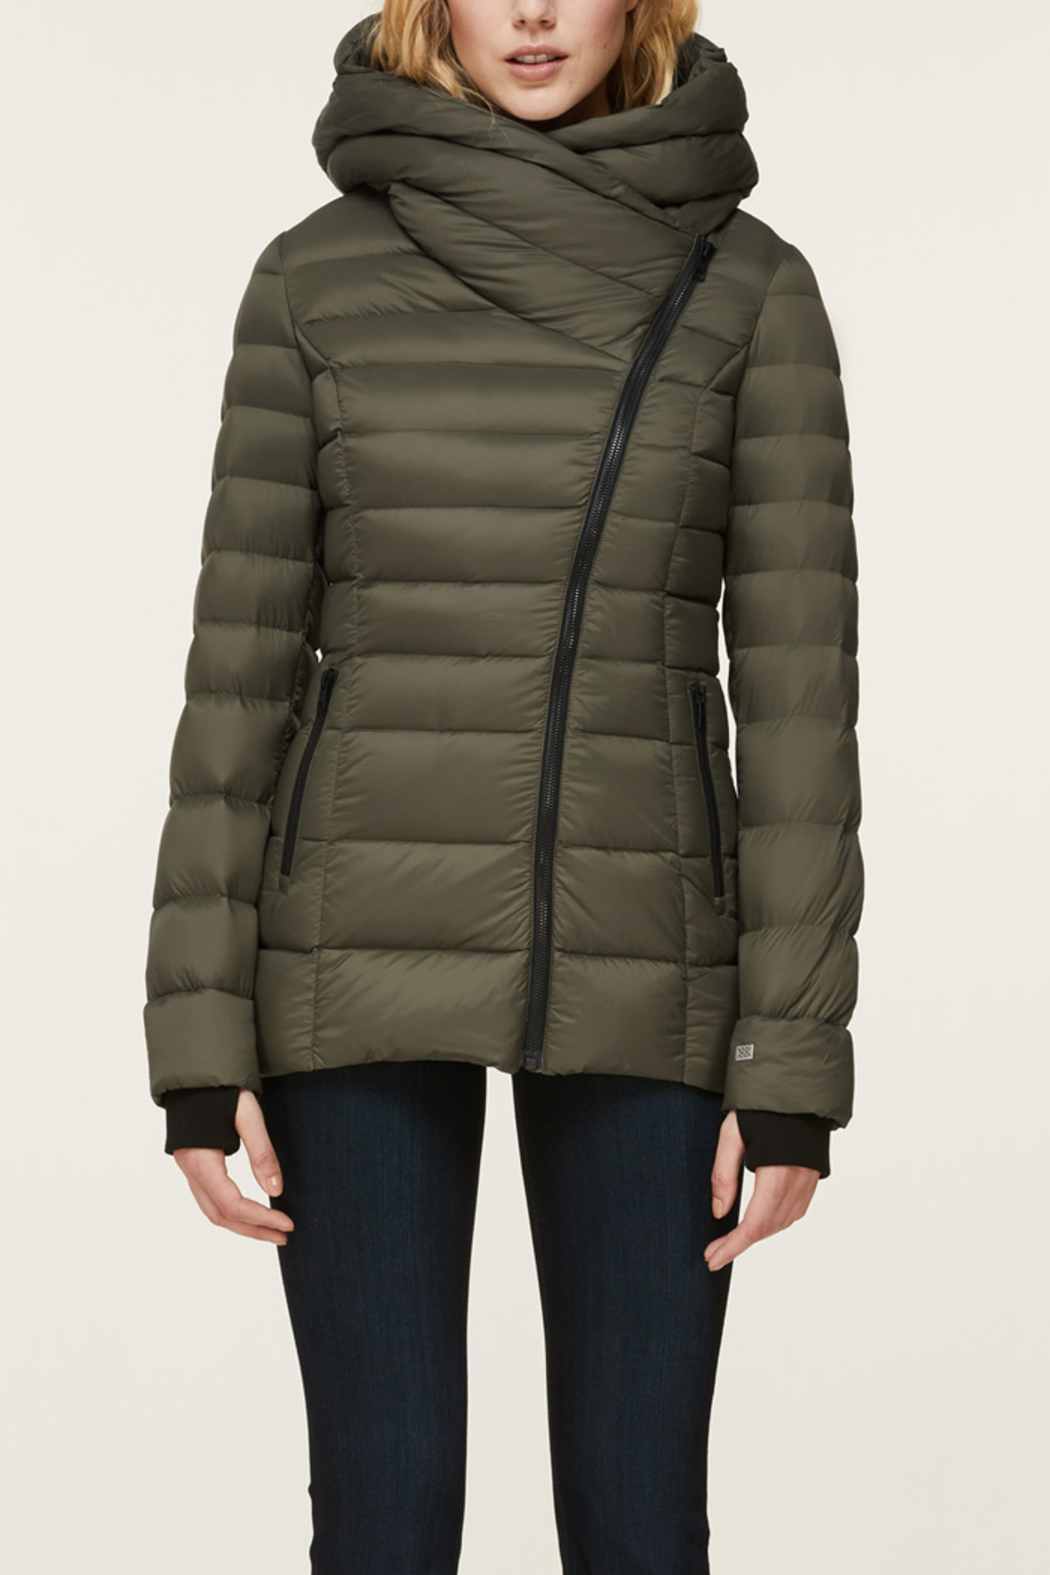 Soia & Kyo SOIA & KYO LIGHTWEIGHT DOWN COAT - Front Full Image